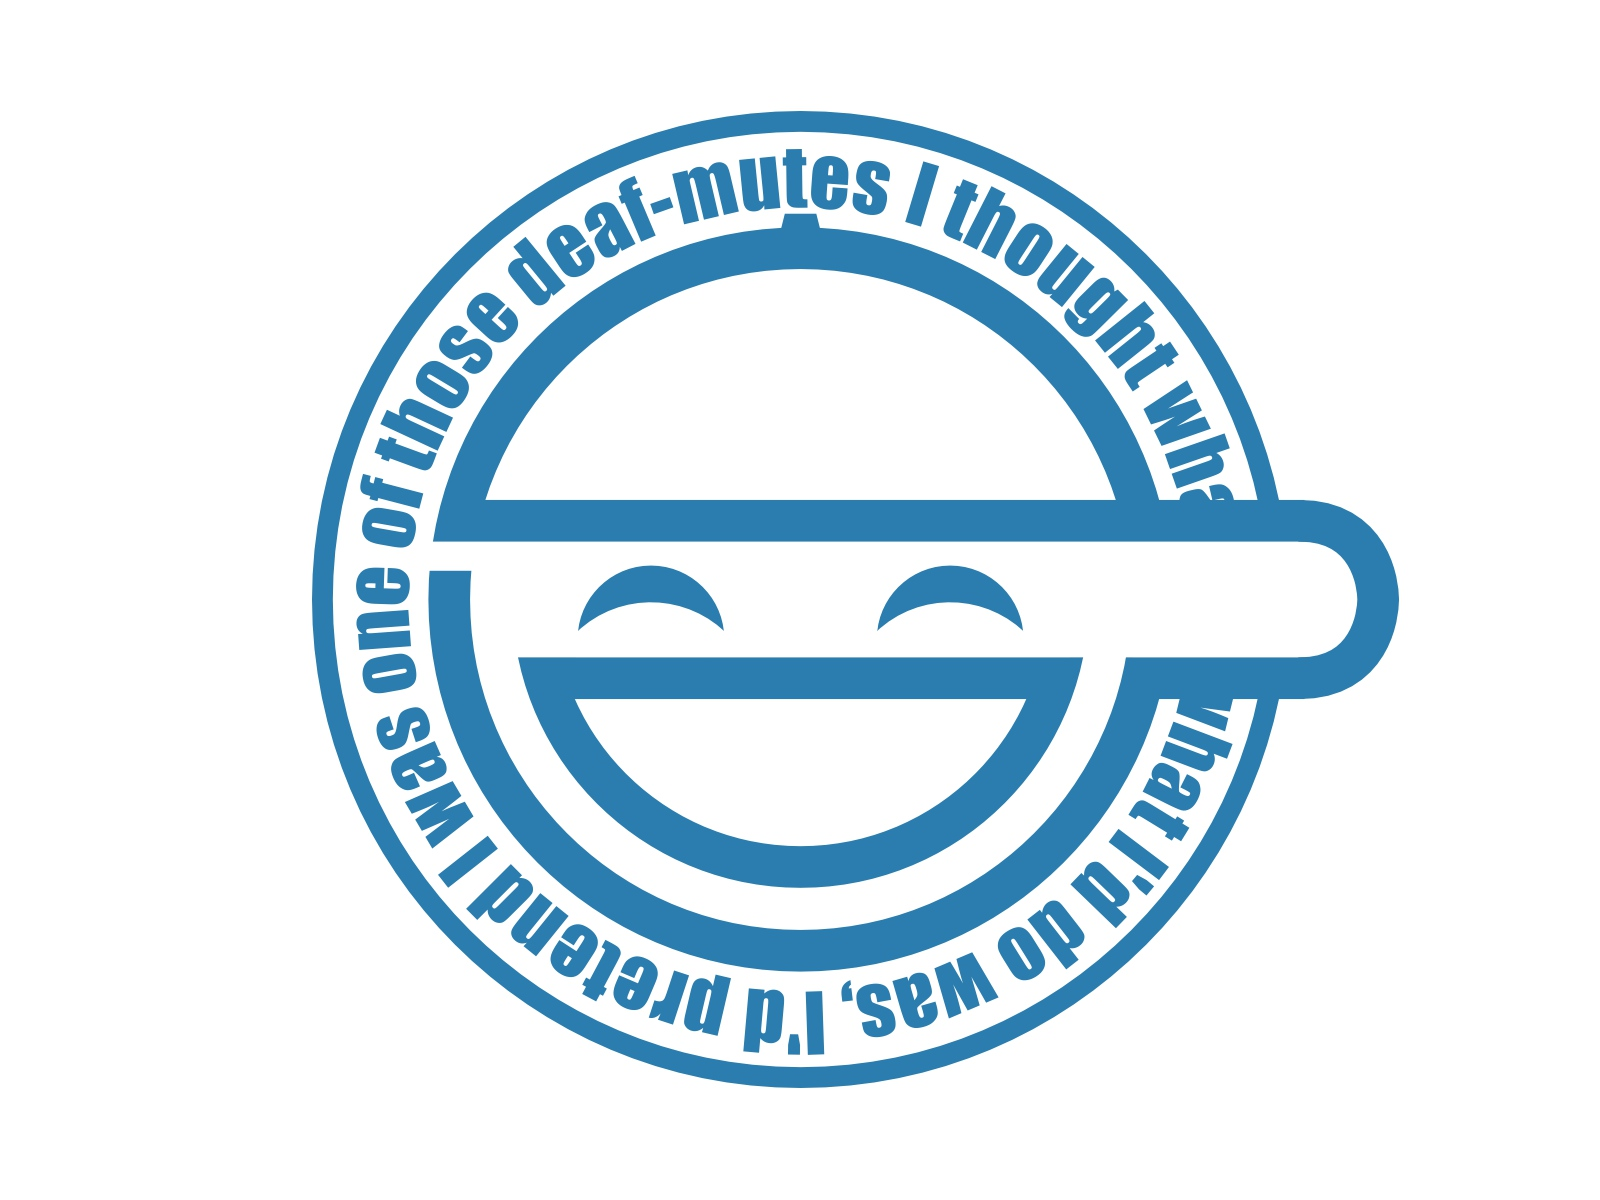 ghost_in_the_shell laughing_man logo monochrome white